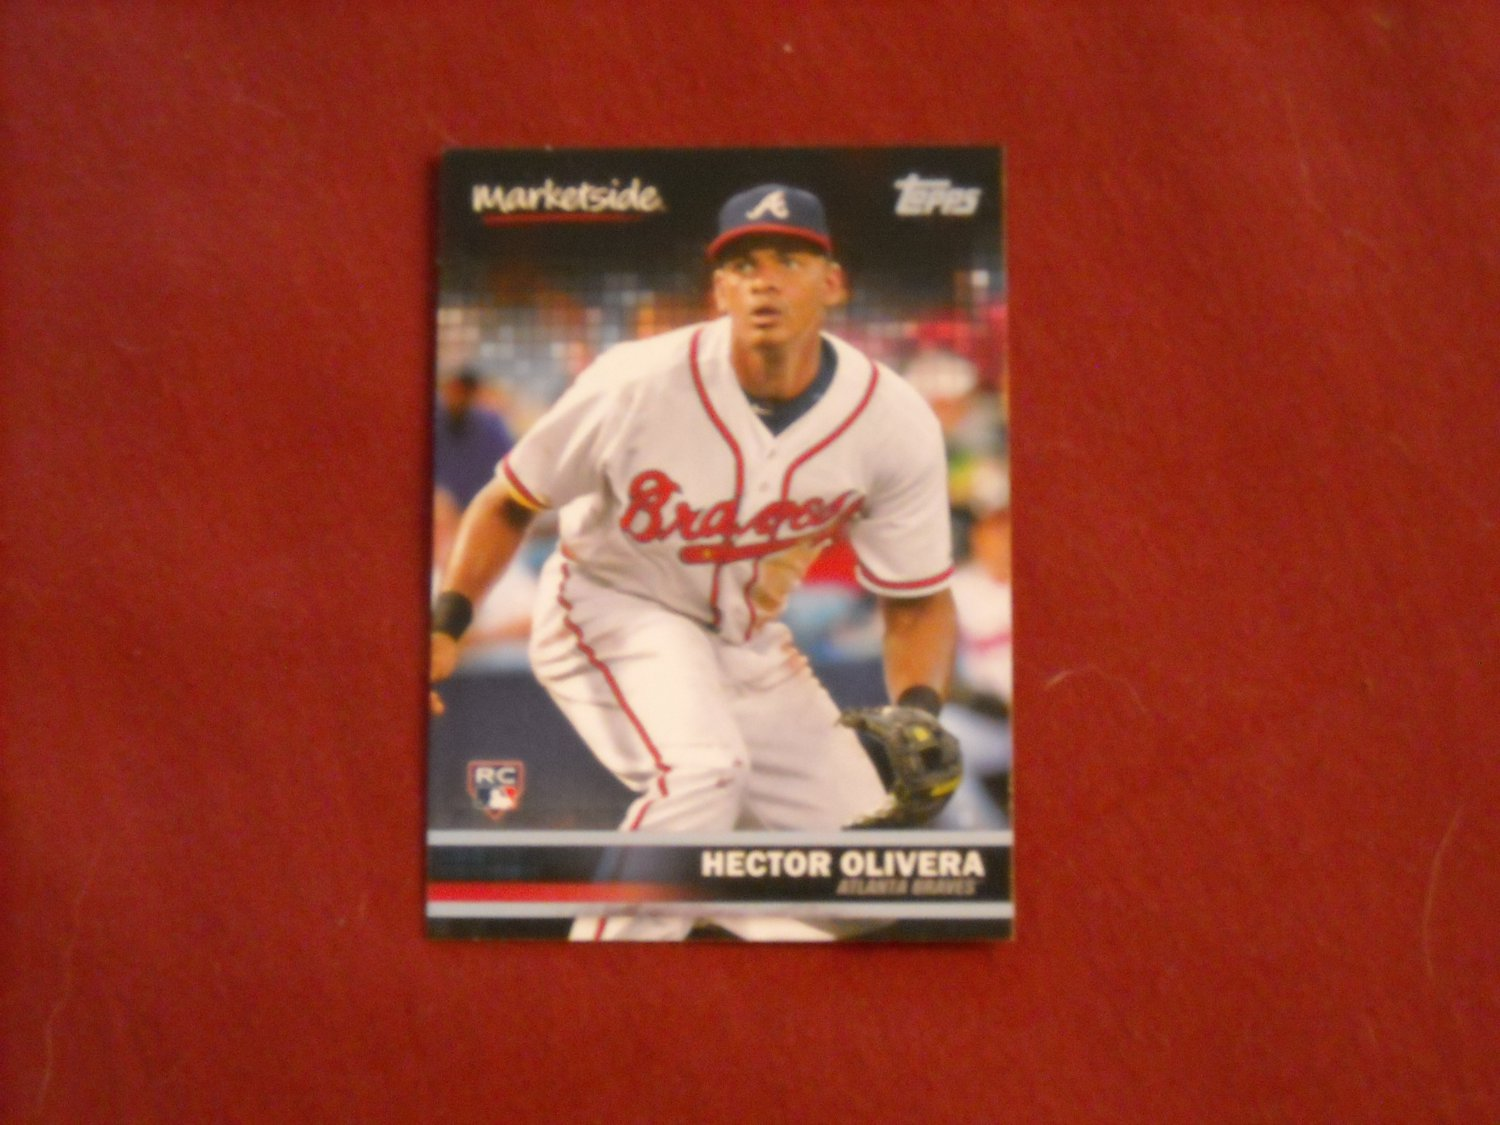 Hector Olivera Atlanta Braves Marketside Card No. 32 - Topps 2016 Baseball Card